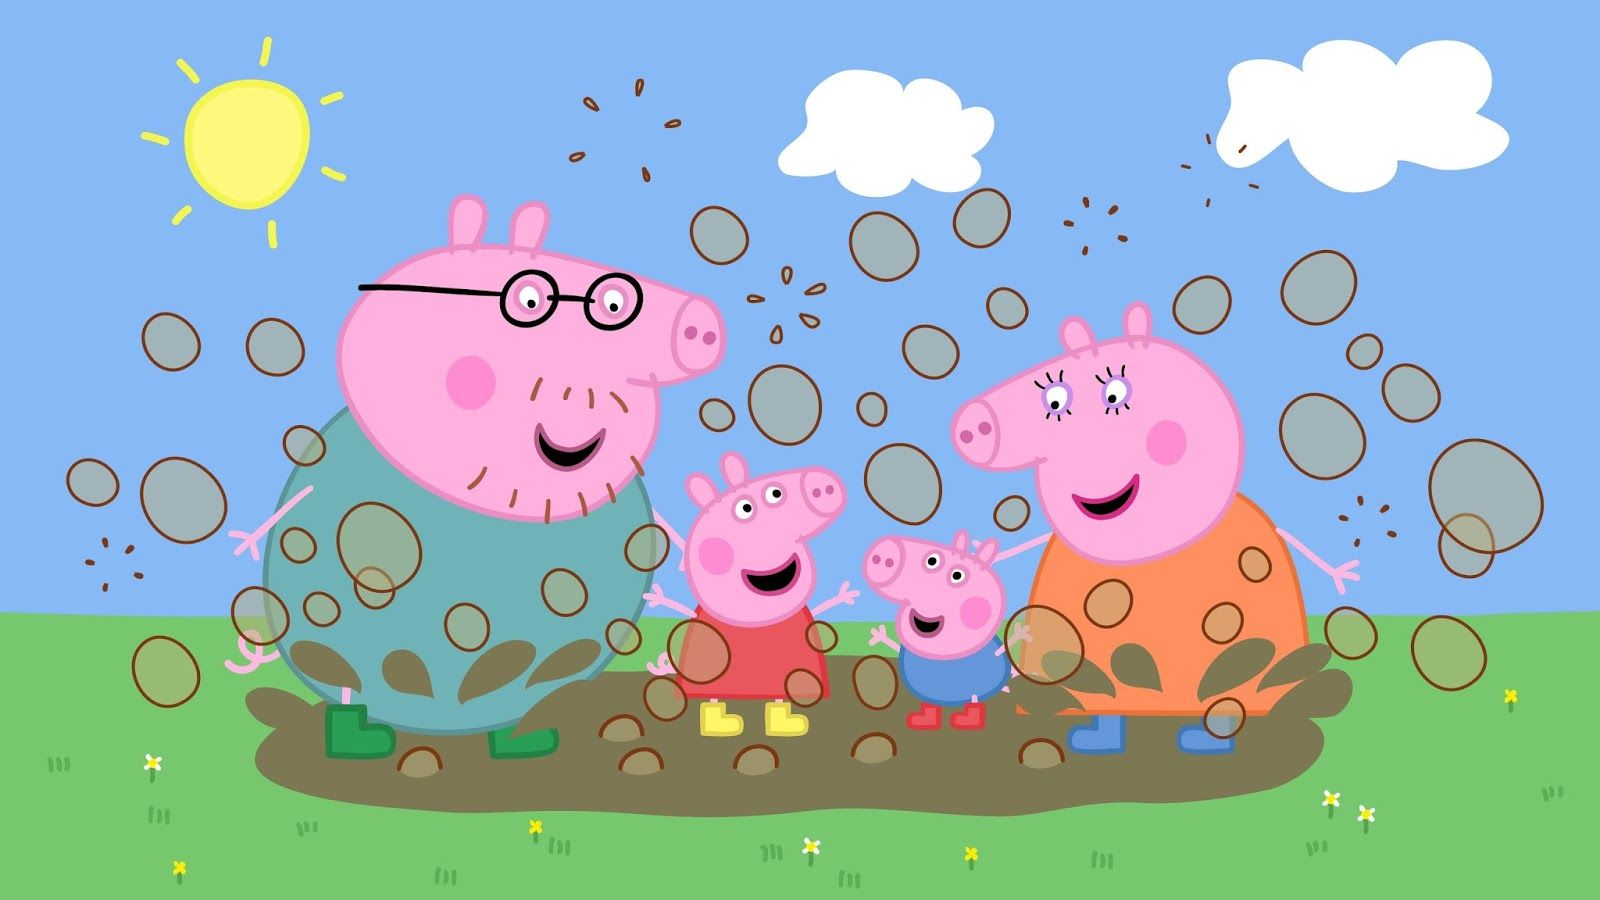 Disney HD Wallpapers Peppa Pig Cartoon HD Backgrounds